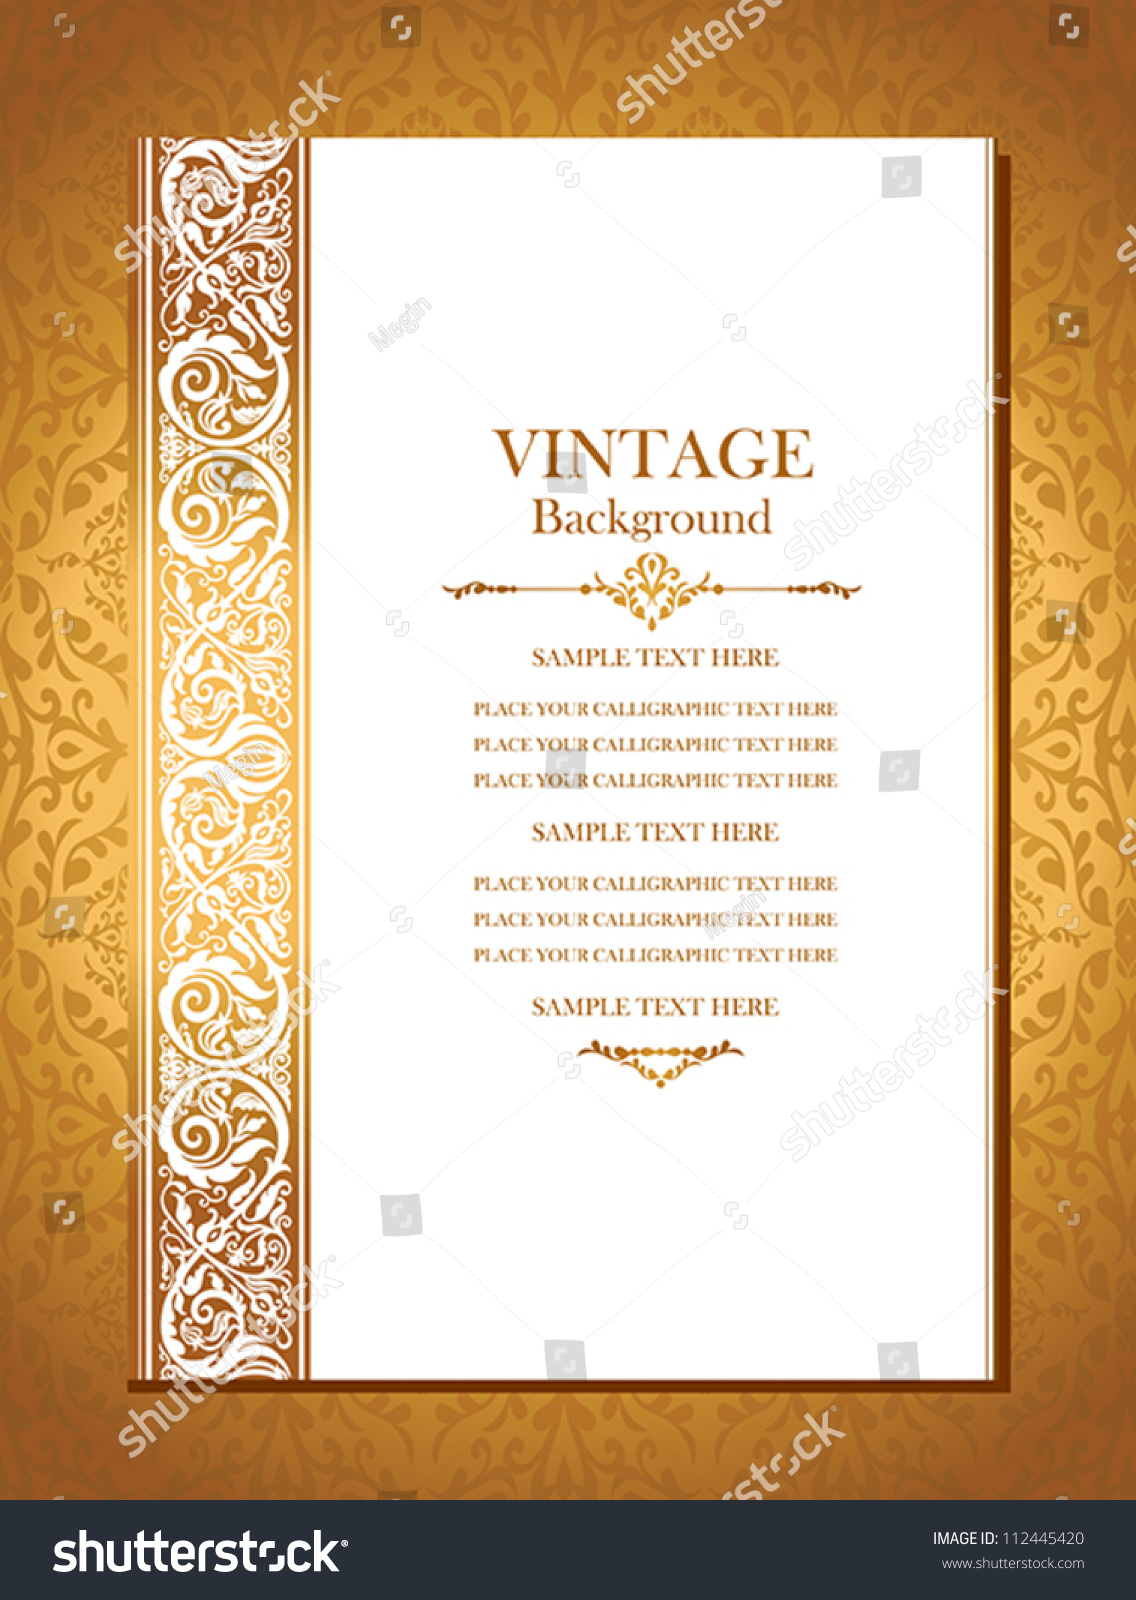 vintage royal background antique victorian gold stock vector vintage royal background antique victorian gold or nt baroque frame beautiful wedding card